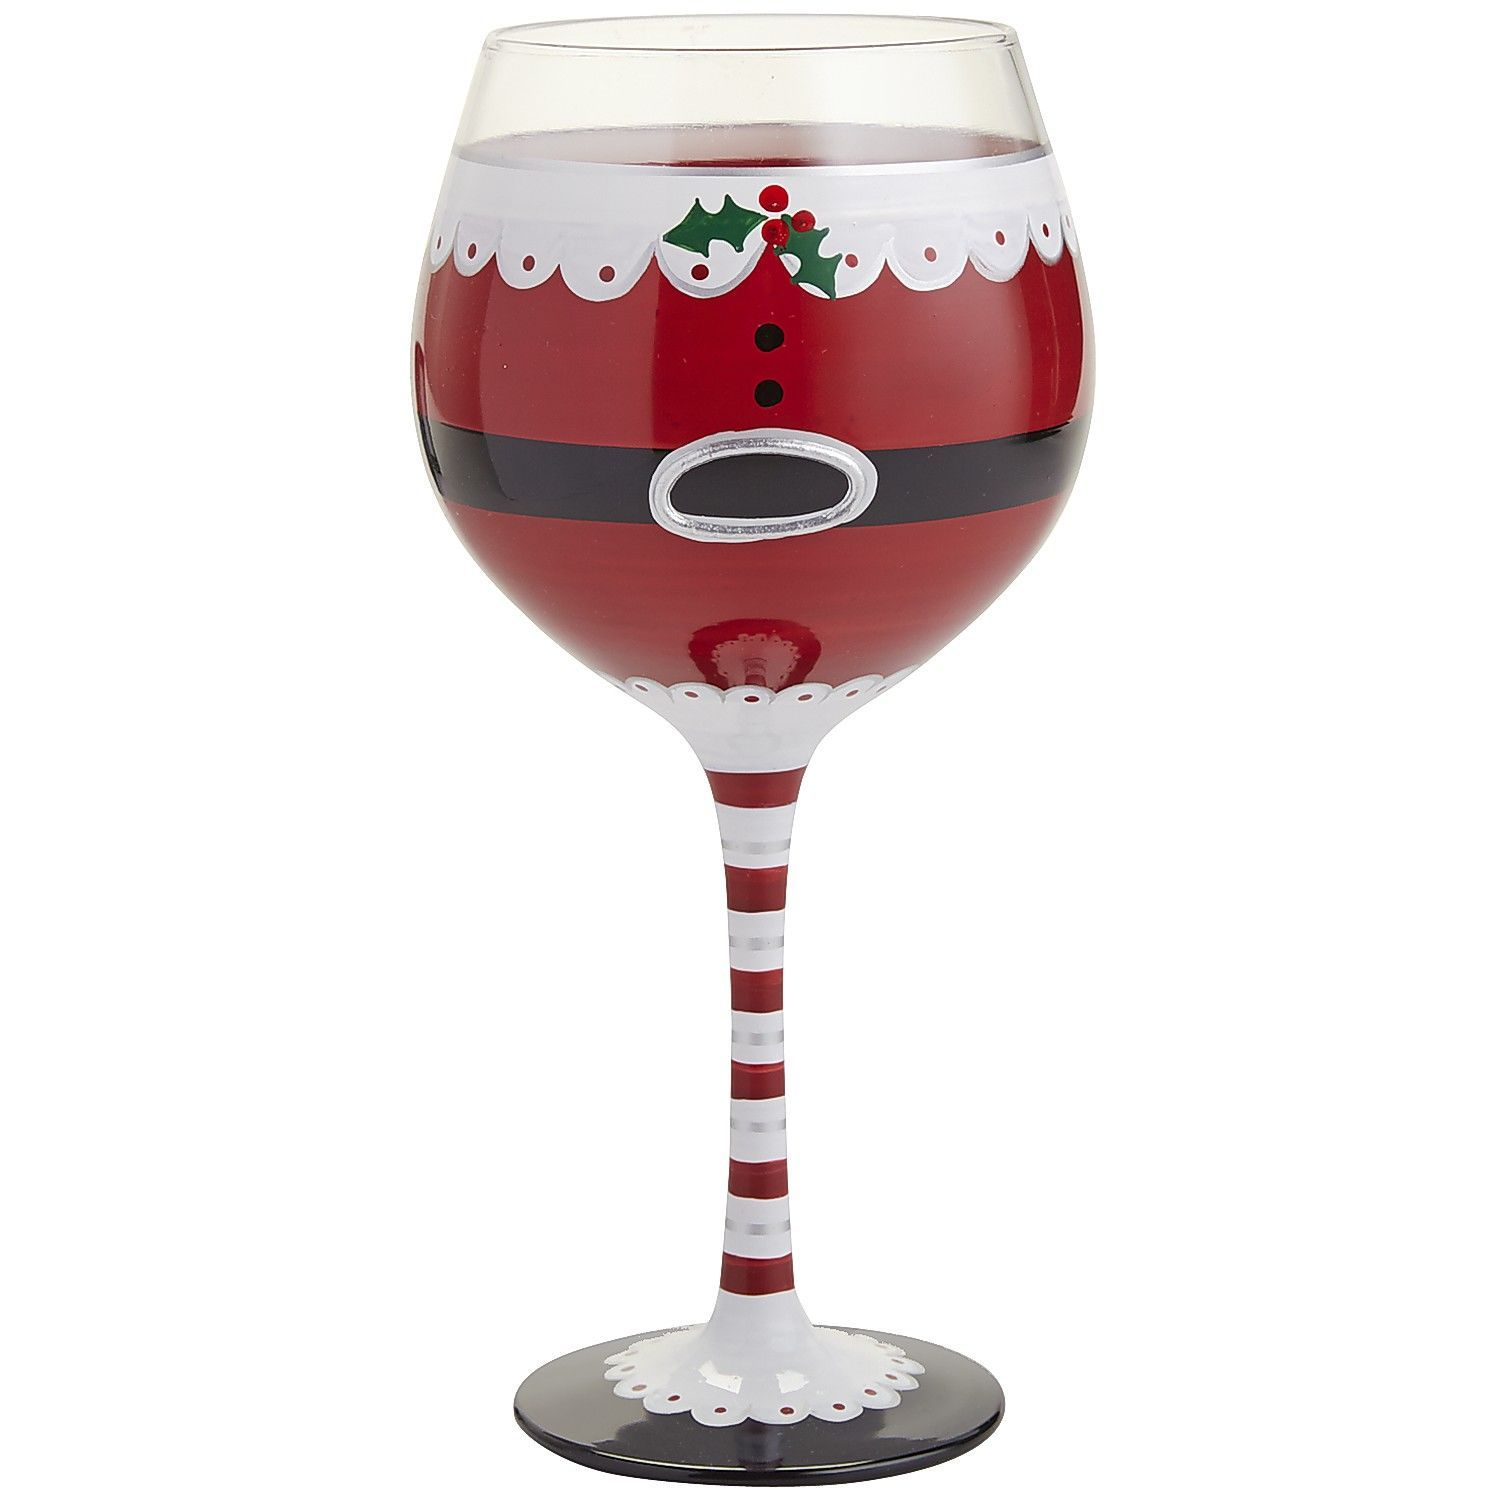 mrs claus painted wine glass pier 1 imports deco pinterest vin verre de vin et verre. Black Bedroom Furniture Sets. Home Design Ideas